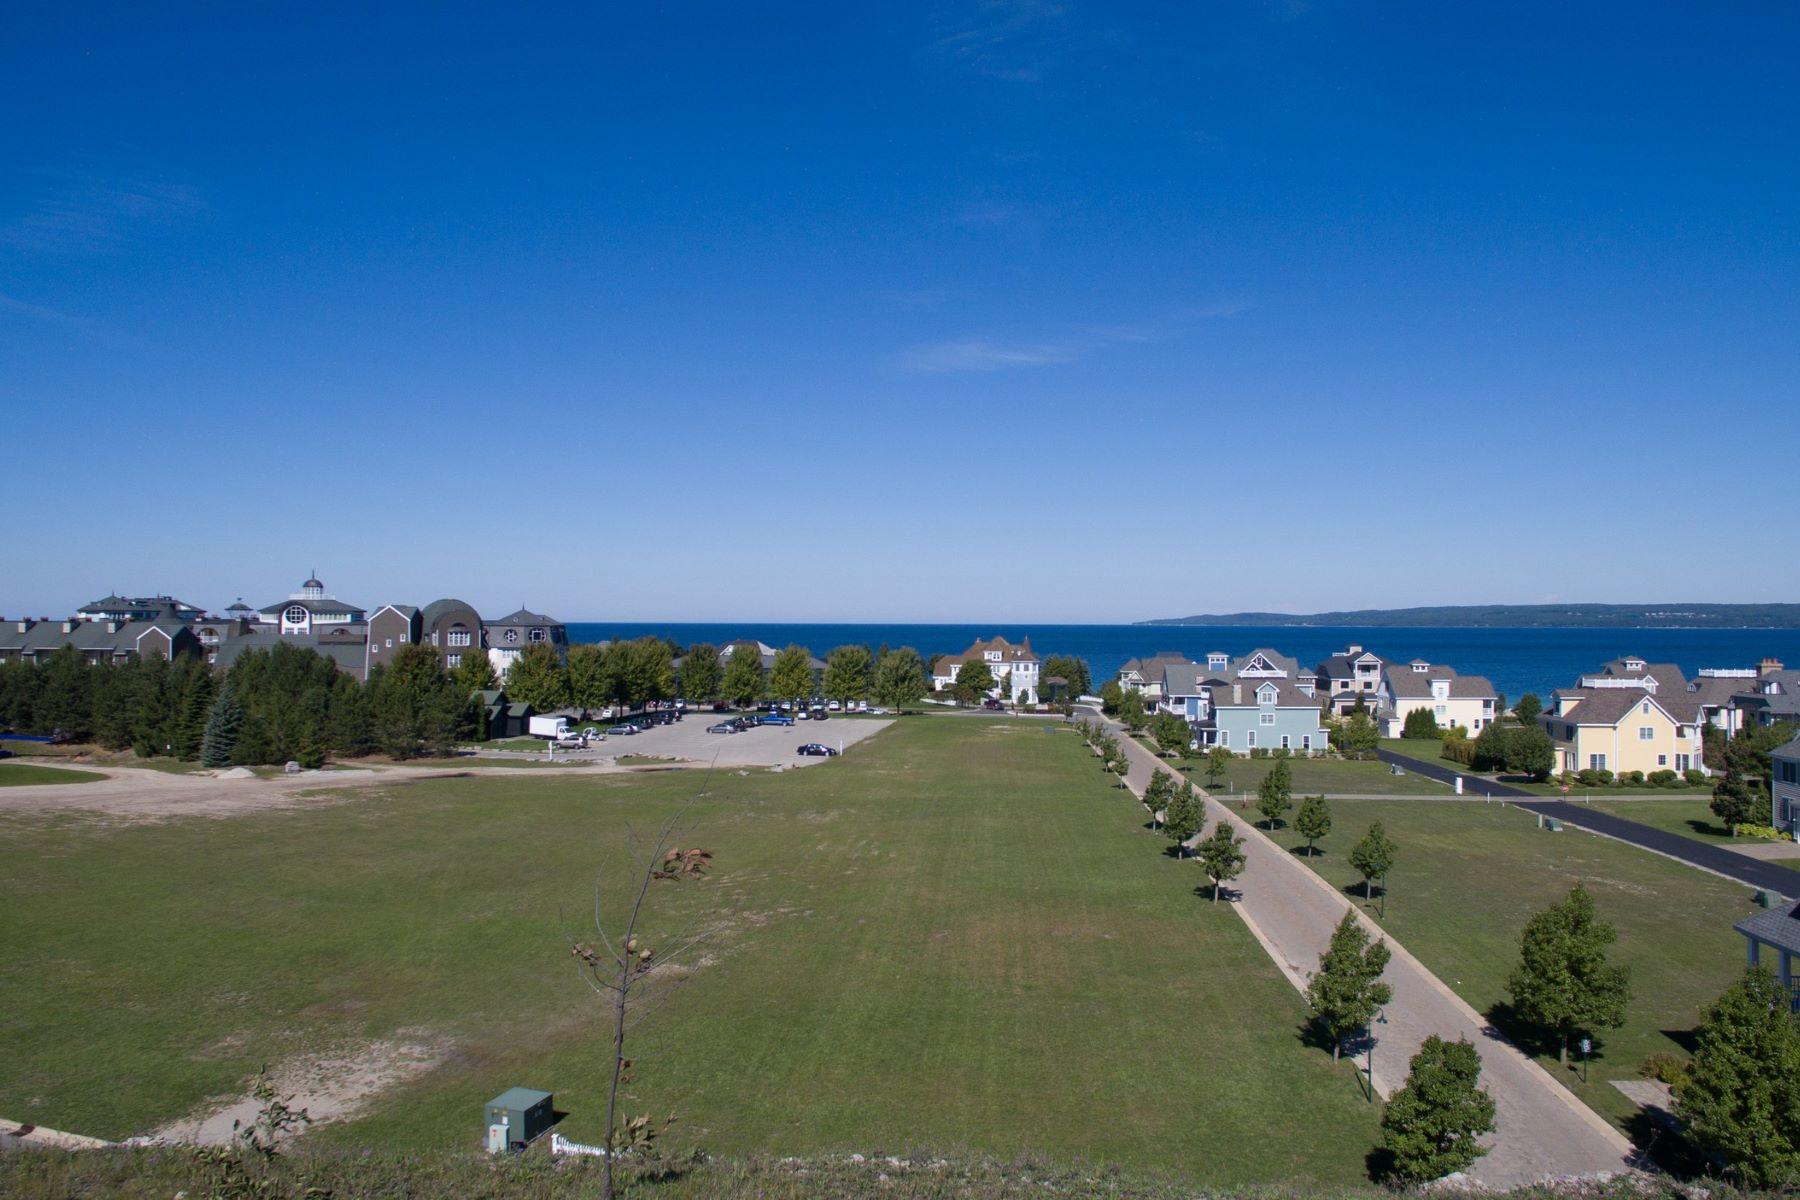 Land for Sale at Unit 7, The Ridge 3760 Cliffs Drive, Unit 7, The Ridge Bay Harbor, Michigan 49770 United States